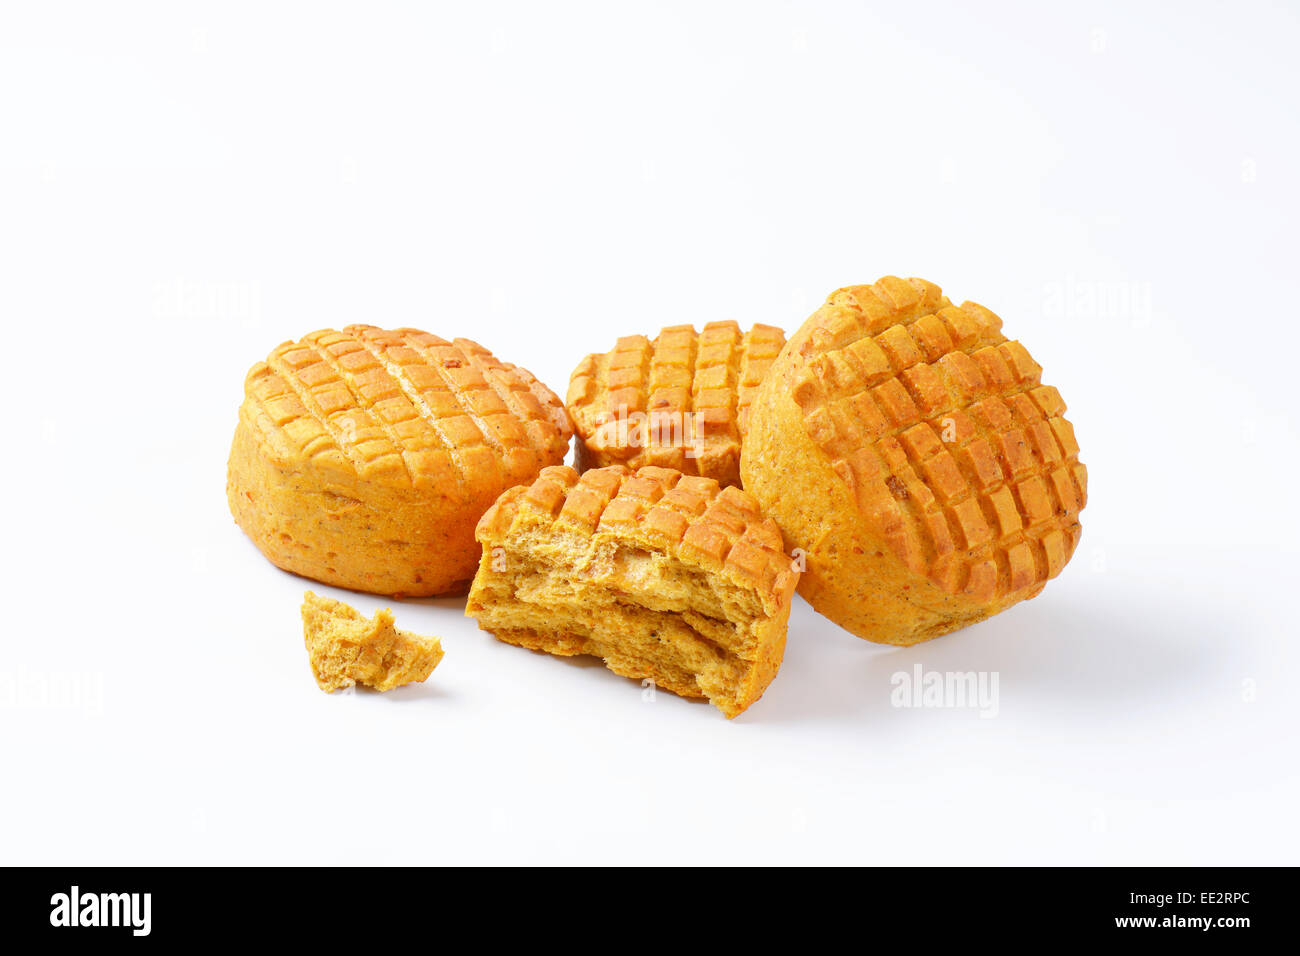 Small spiced savory biscuits on white background - Stock Image